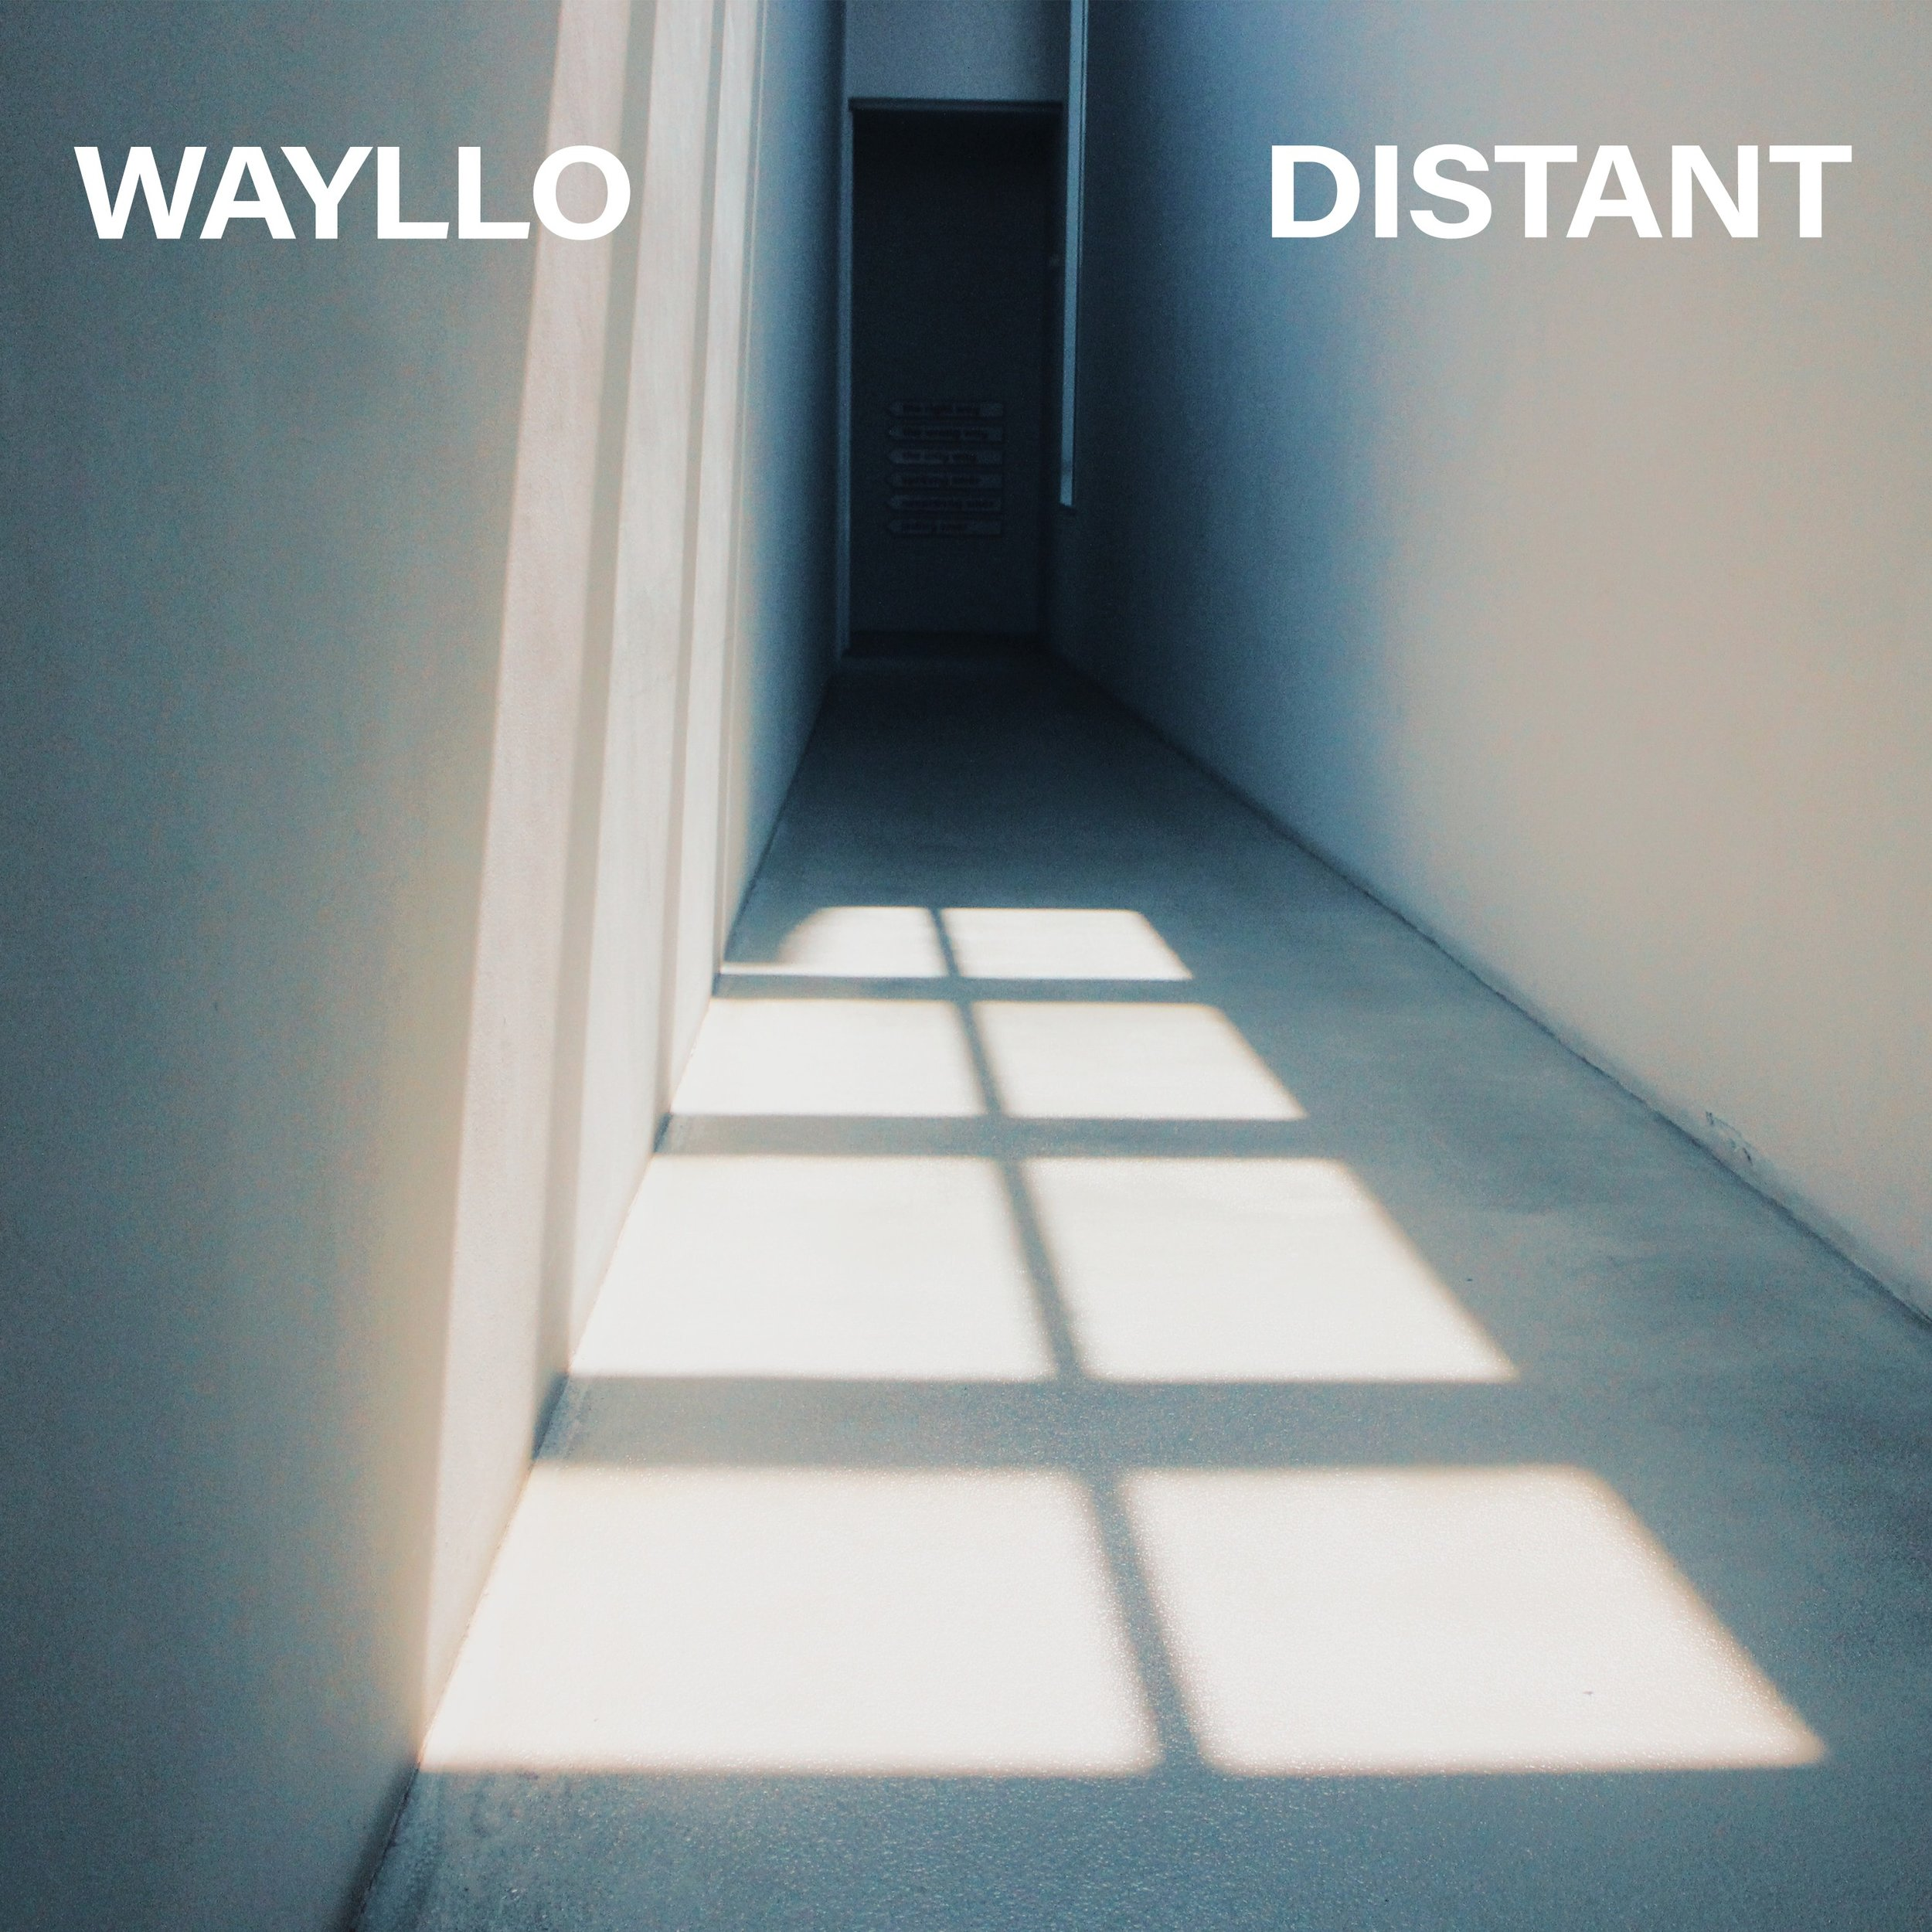 """""""Distant""""by  Wayllo -"""